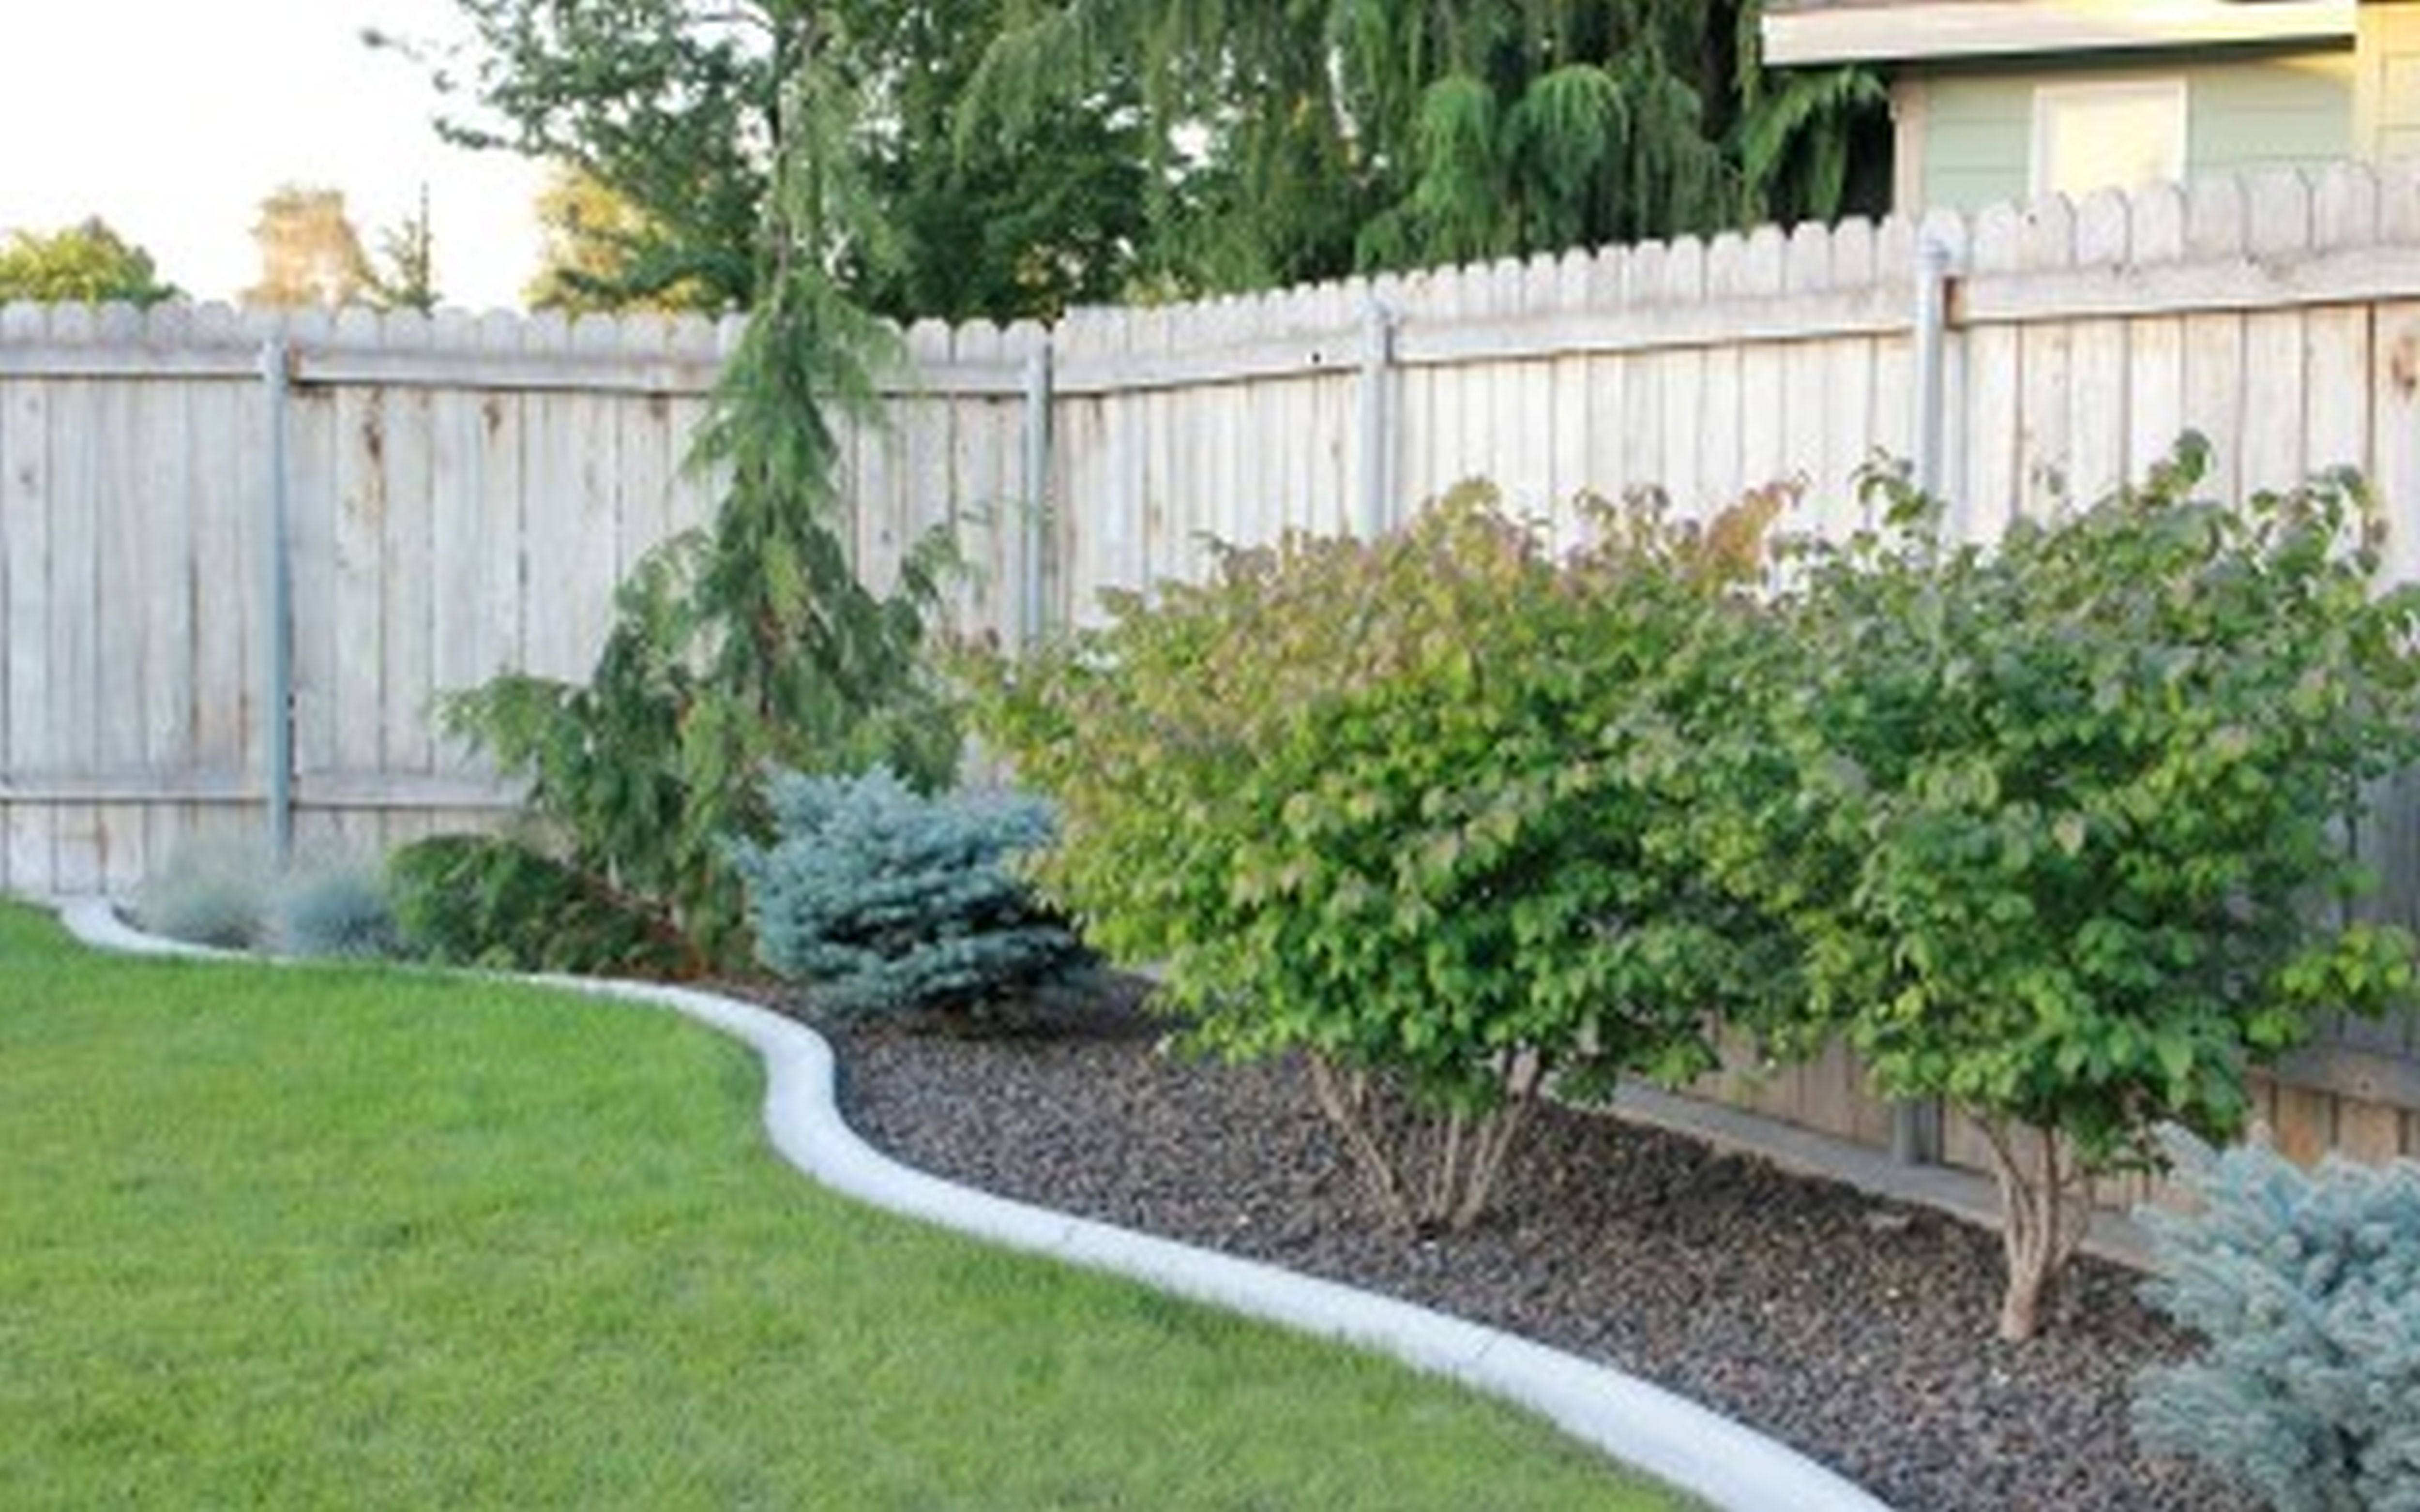 Backyard landscape ideas on a budget - large and beautiful ... on Backyard Patio Designs On A Budget id=55692